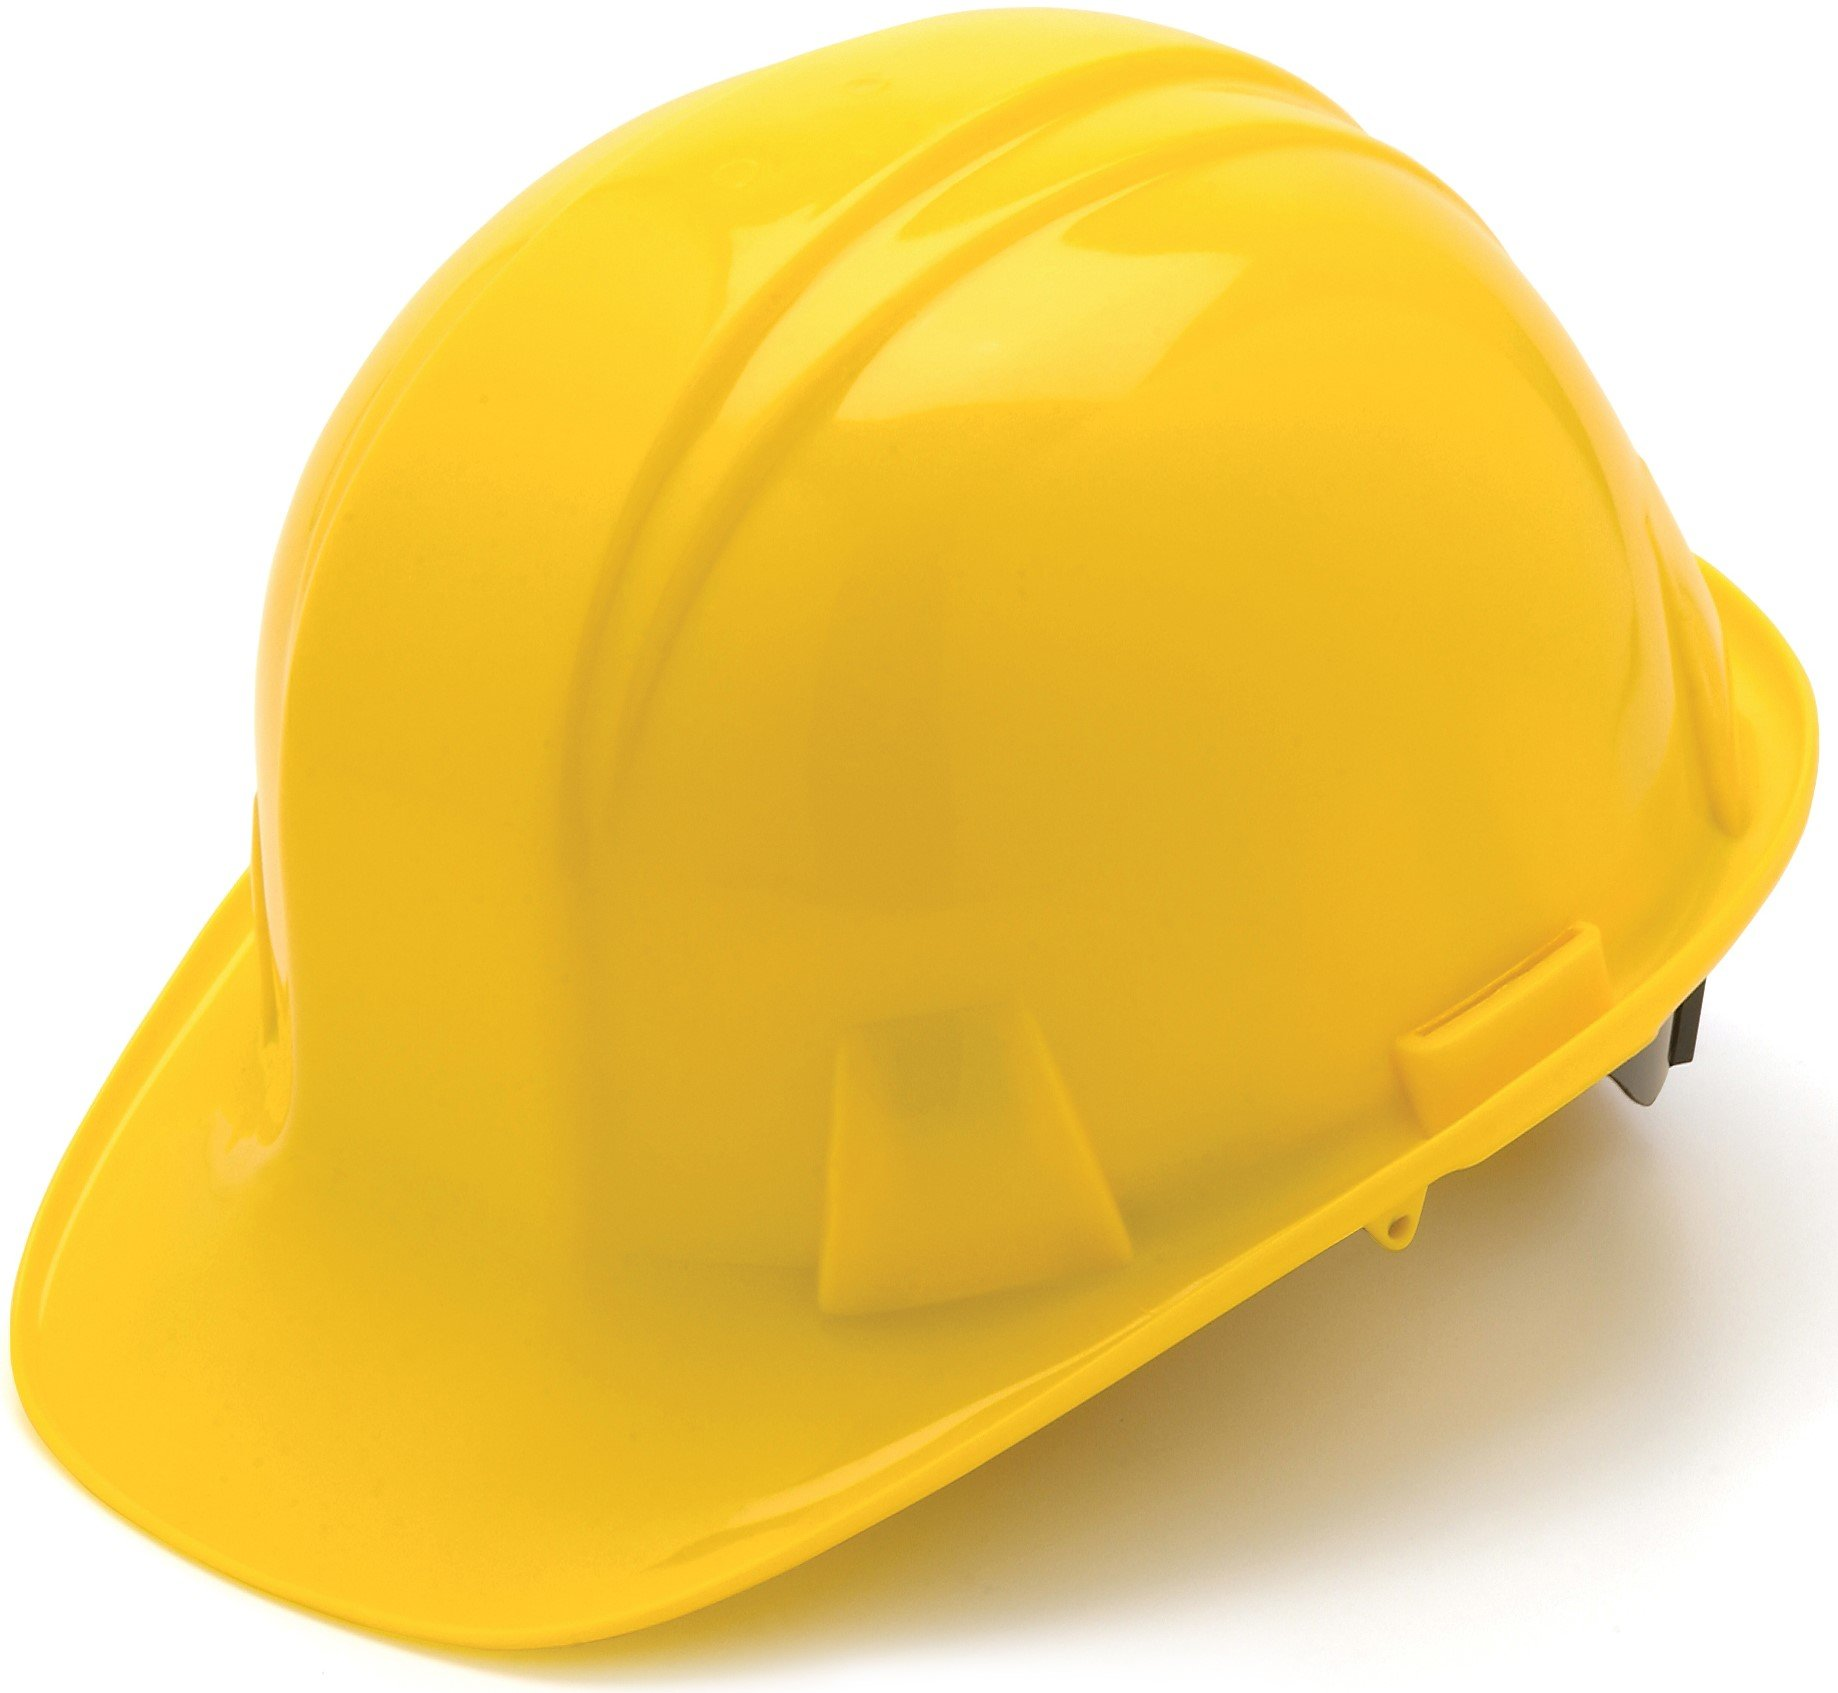 Pyramex Safety Products HP14030 Sl Series 4 pt. Snap Lock Suspension Hard Hat, Yellow by Pyramex Safety